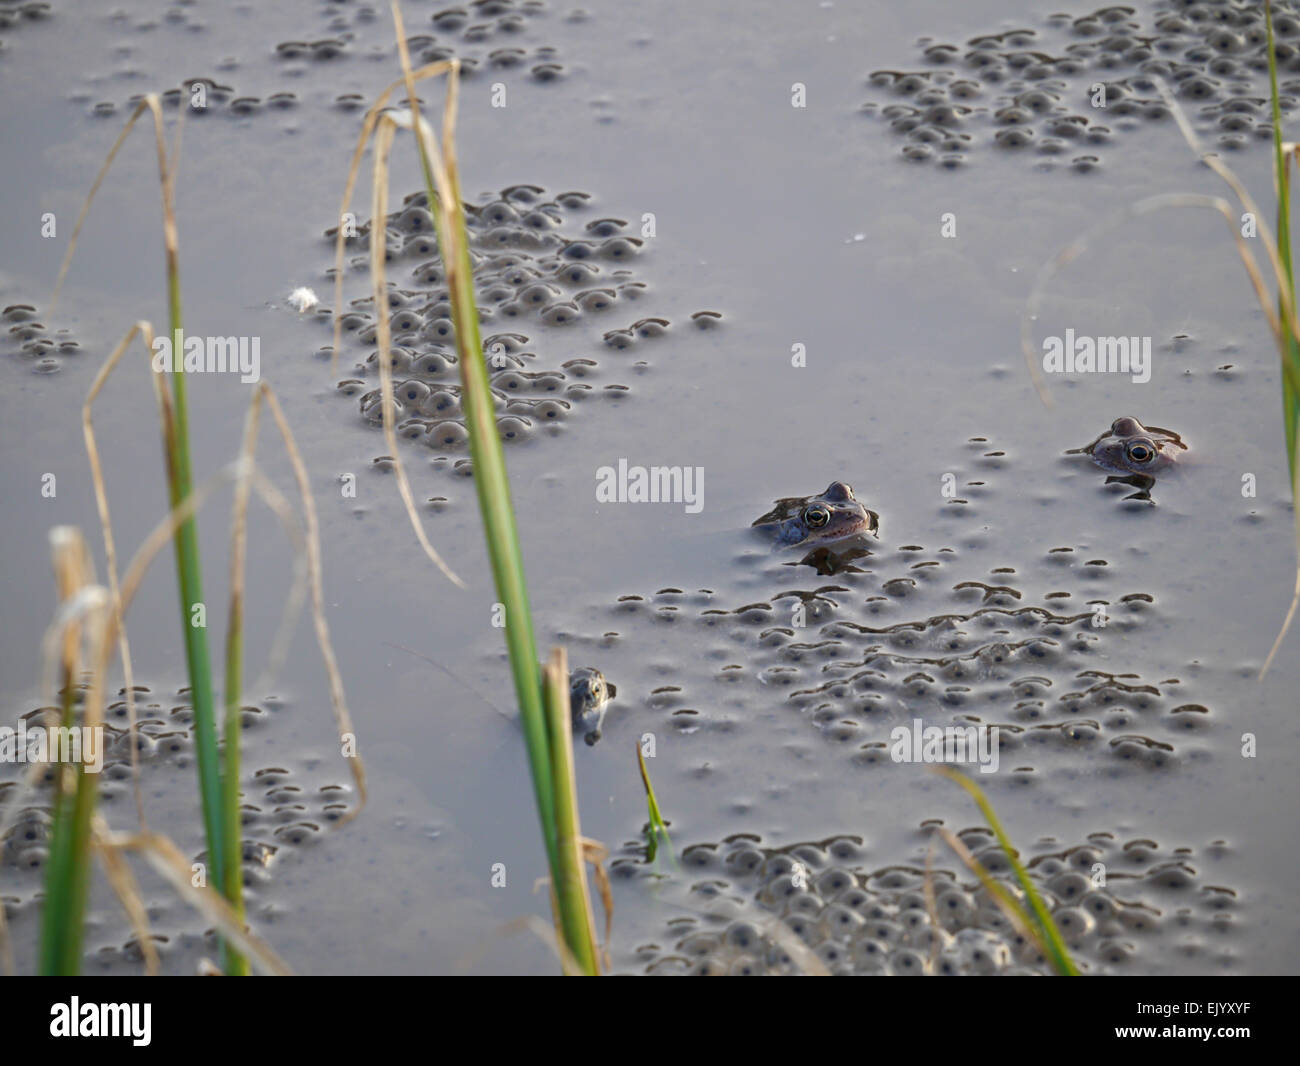 frog spawn, European common brown frog - Stock Image